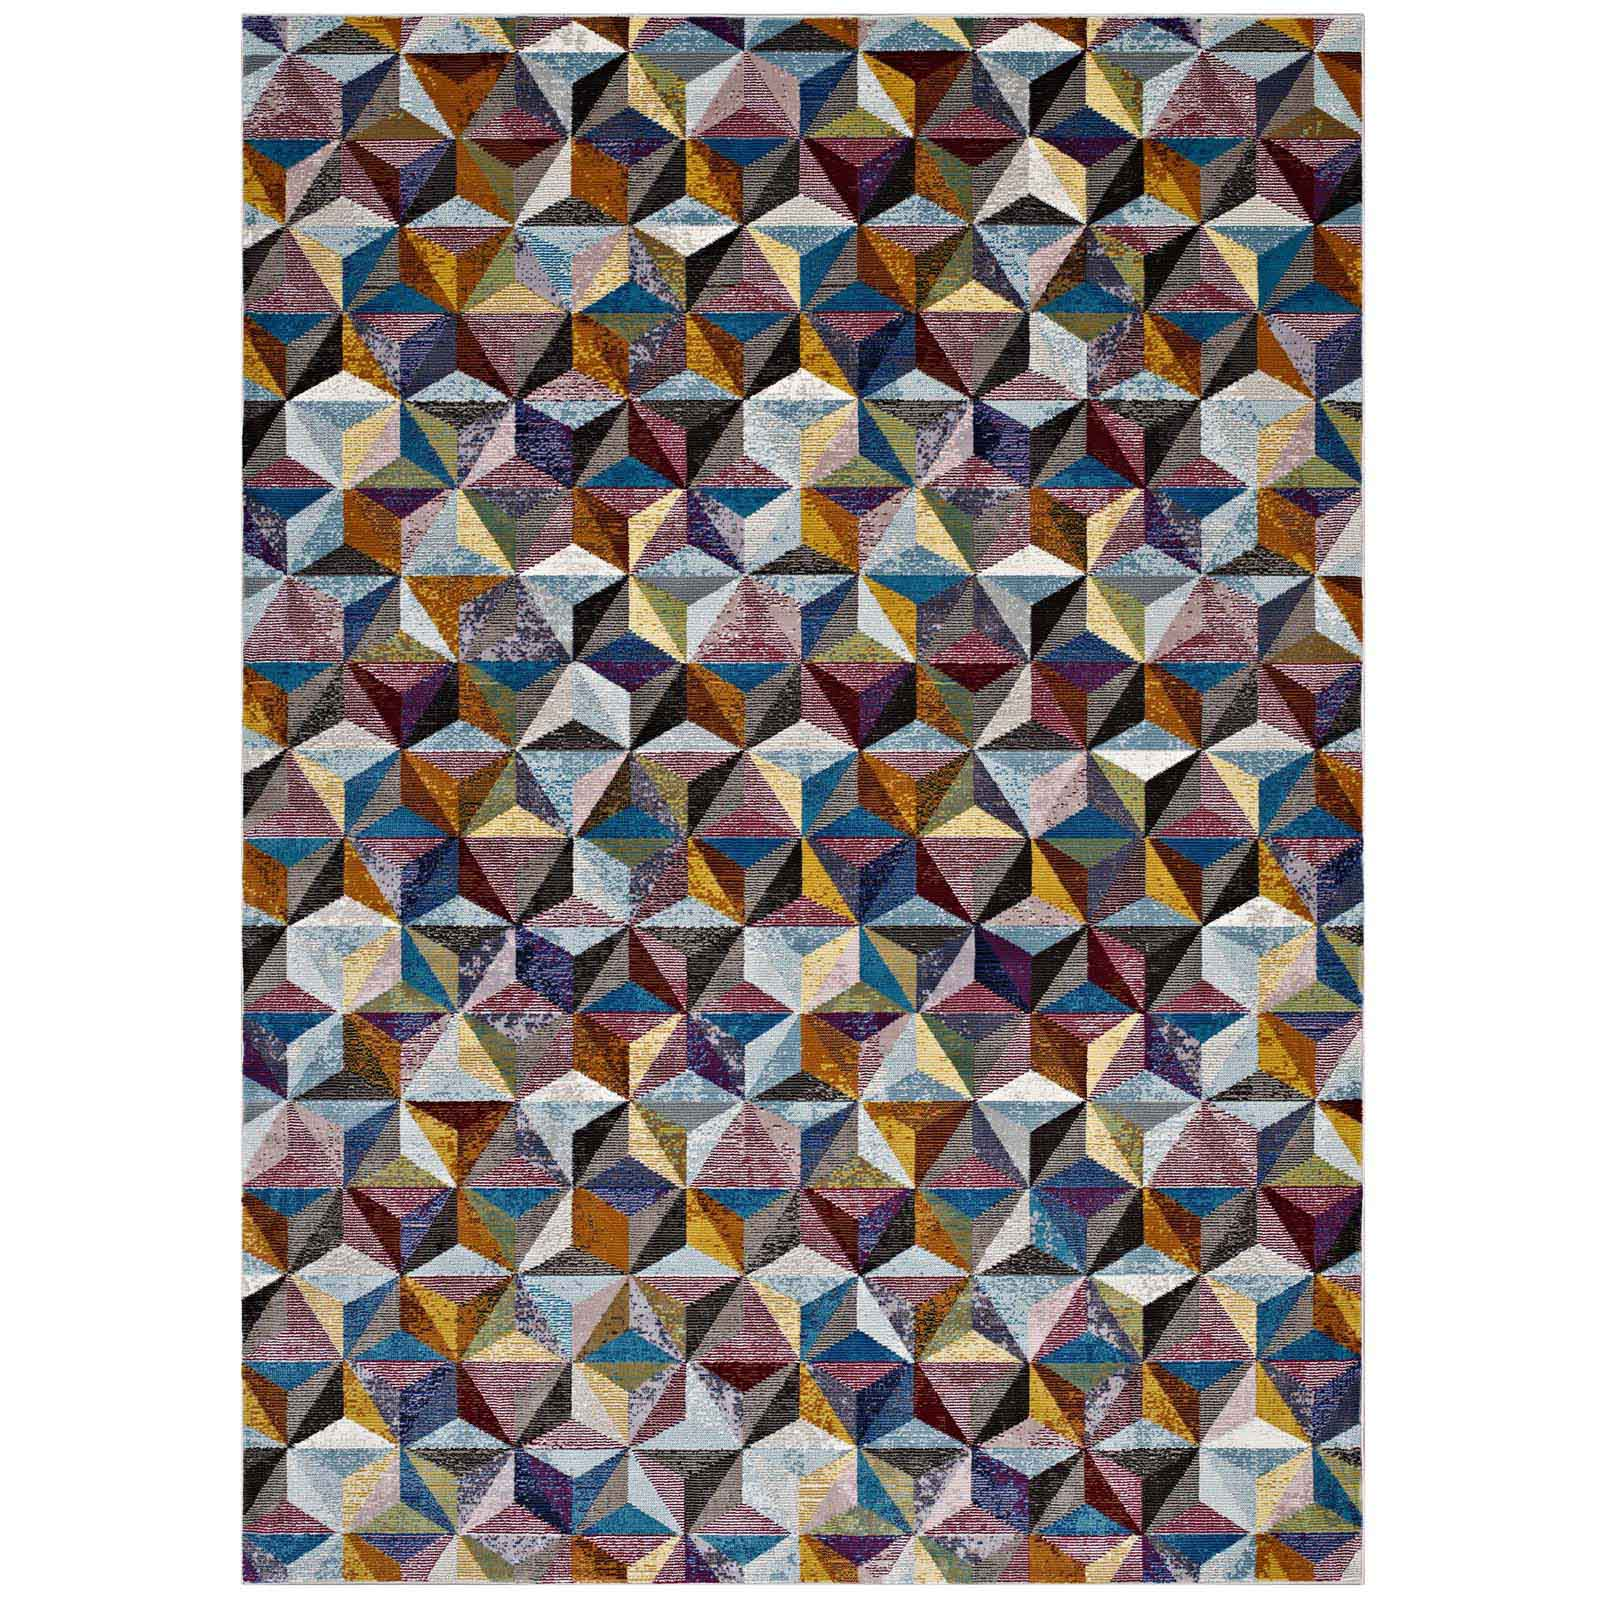 Arisa Geometric Hexagon Mosaic 5x8 Area Rug